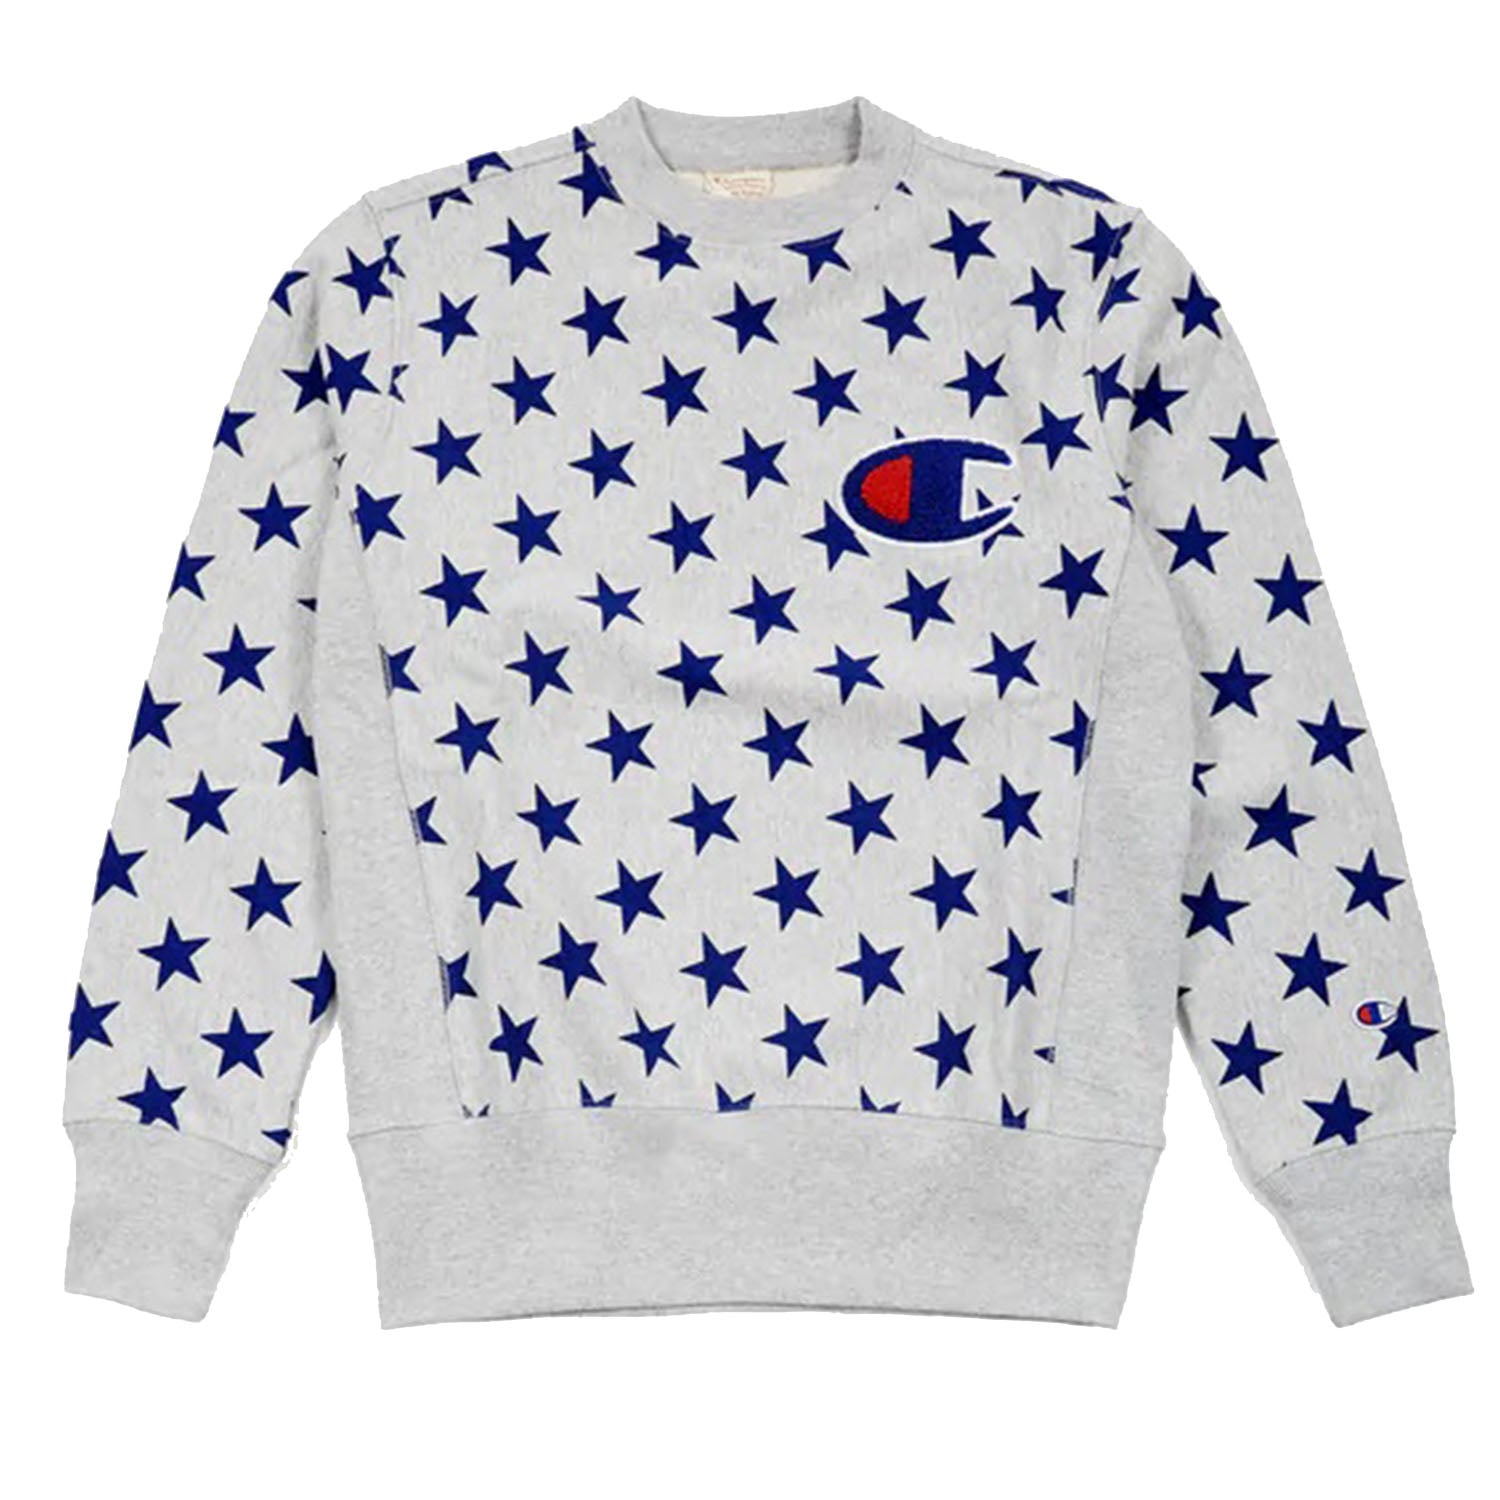 Champion All Over Star Print Grey Sweatshirt